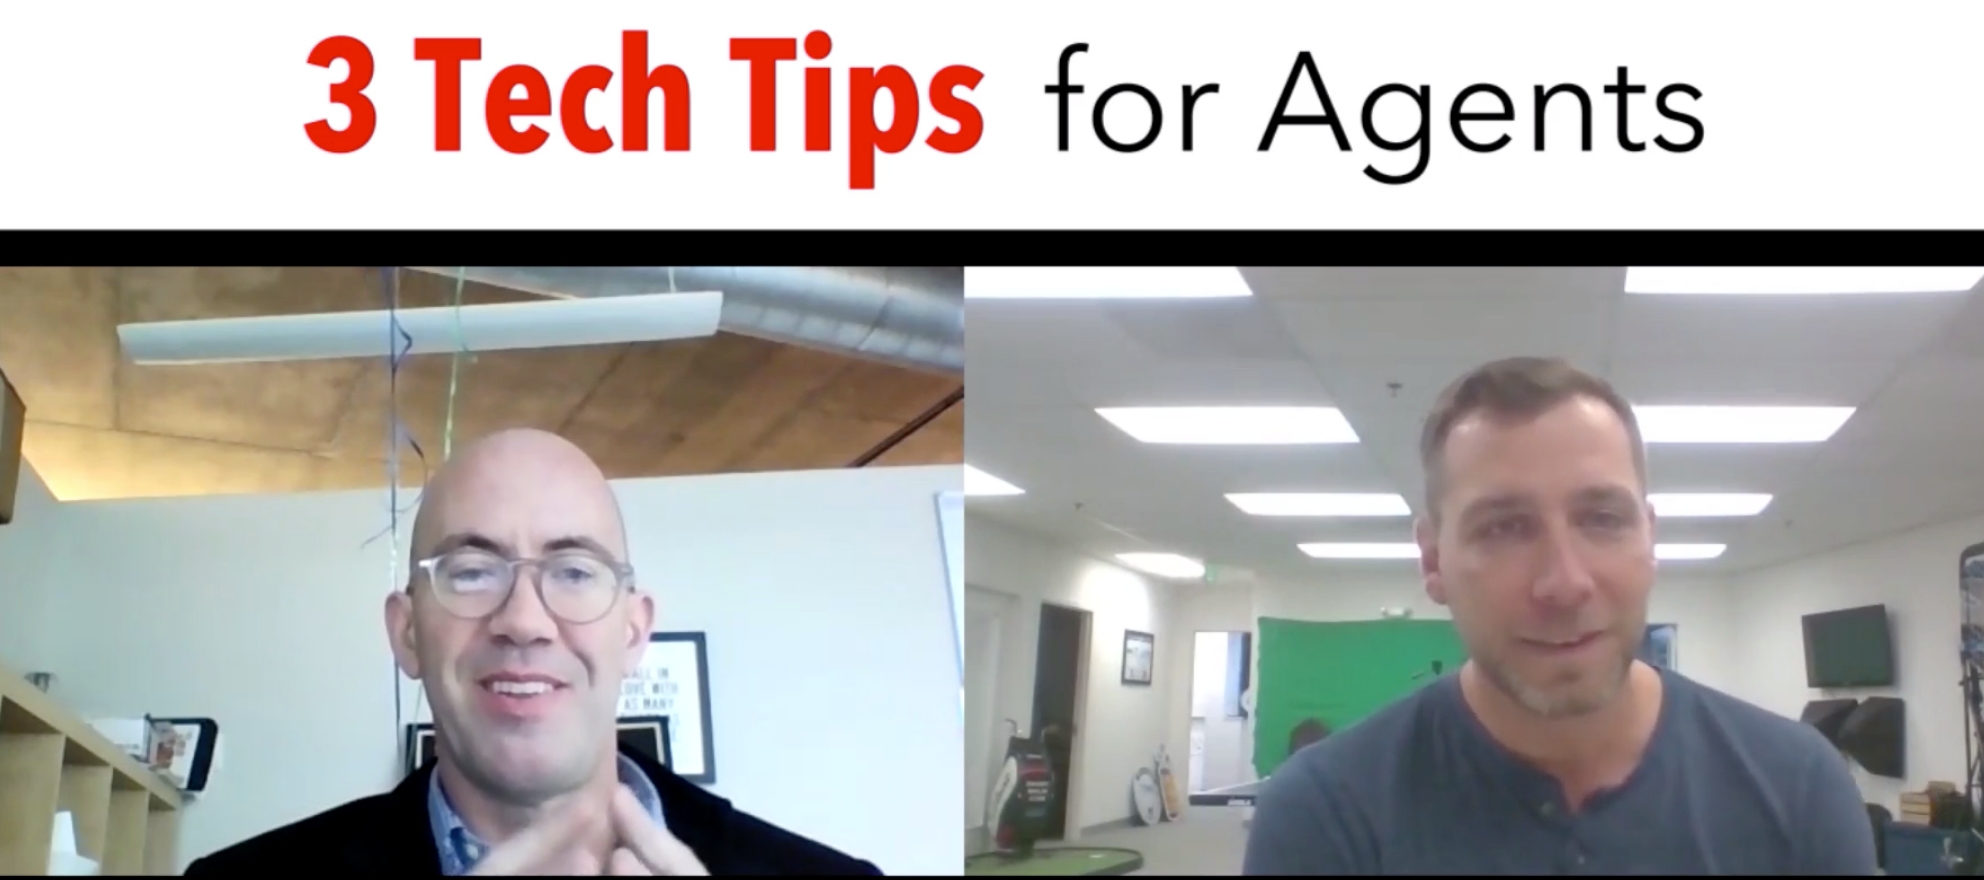 3 tech tips for agents from a Keller Williams team leader